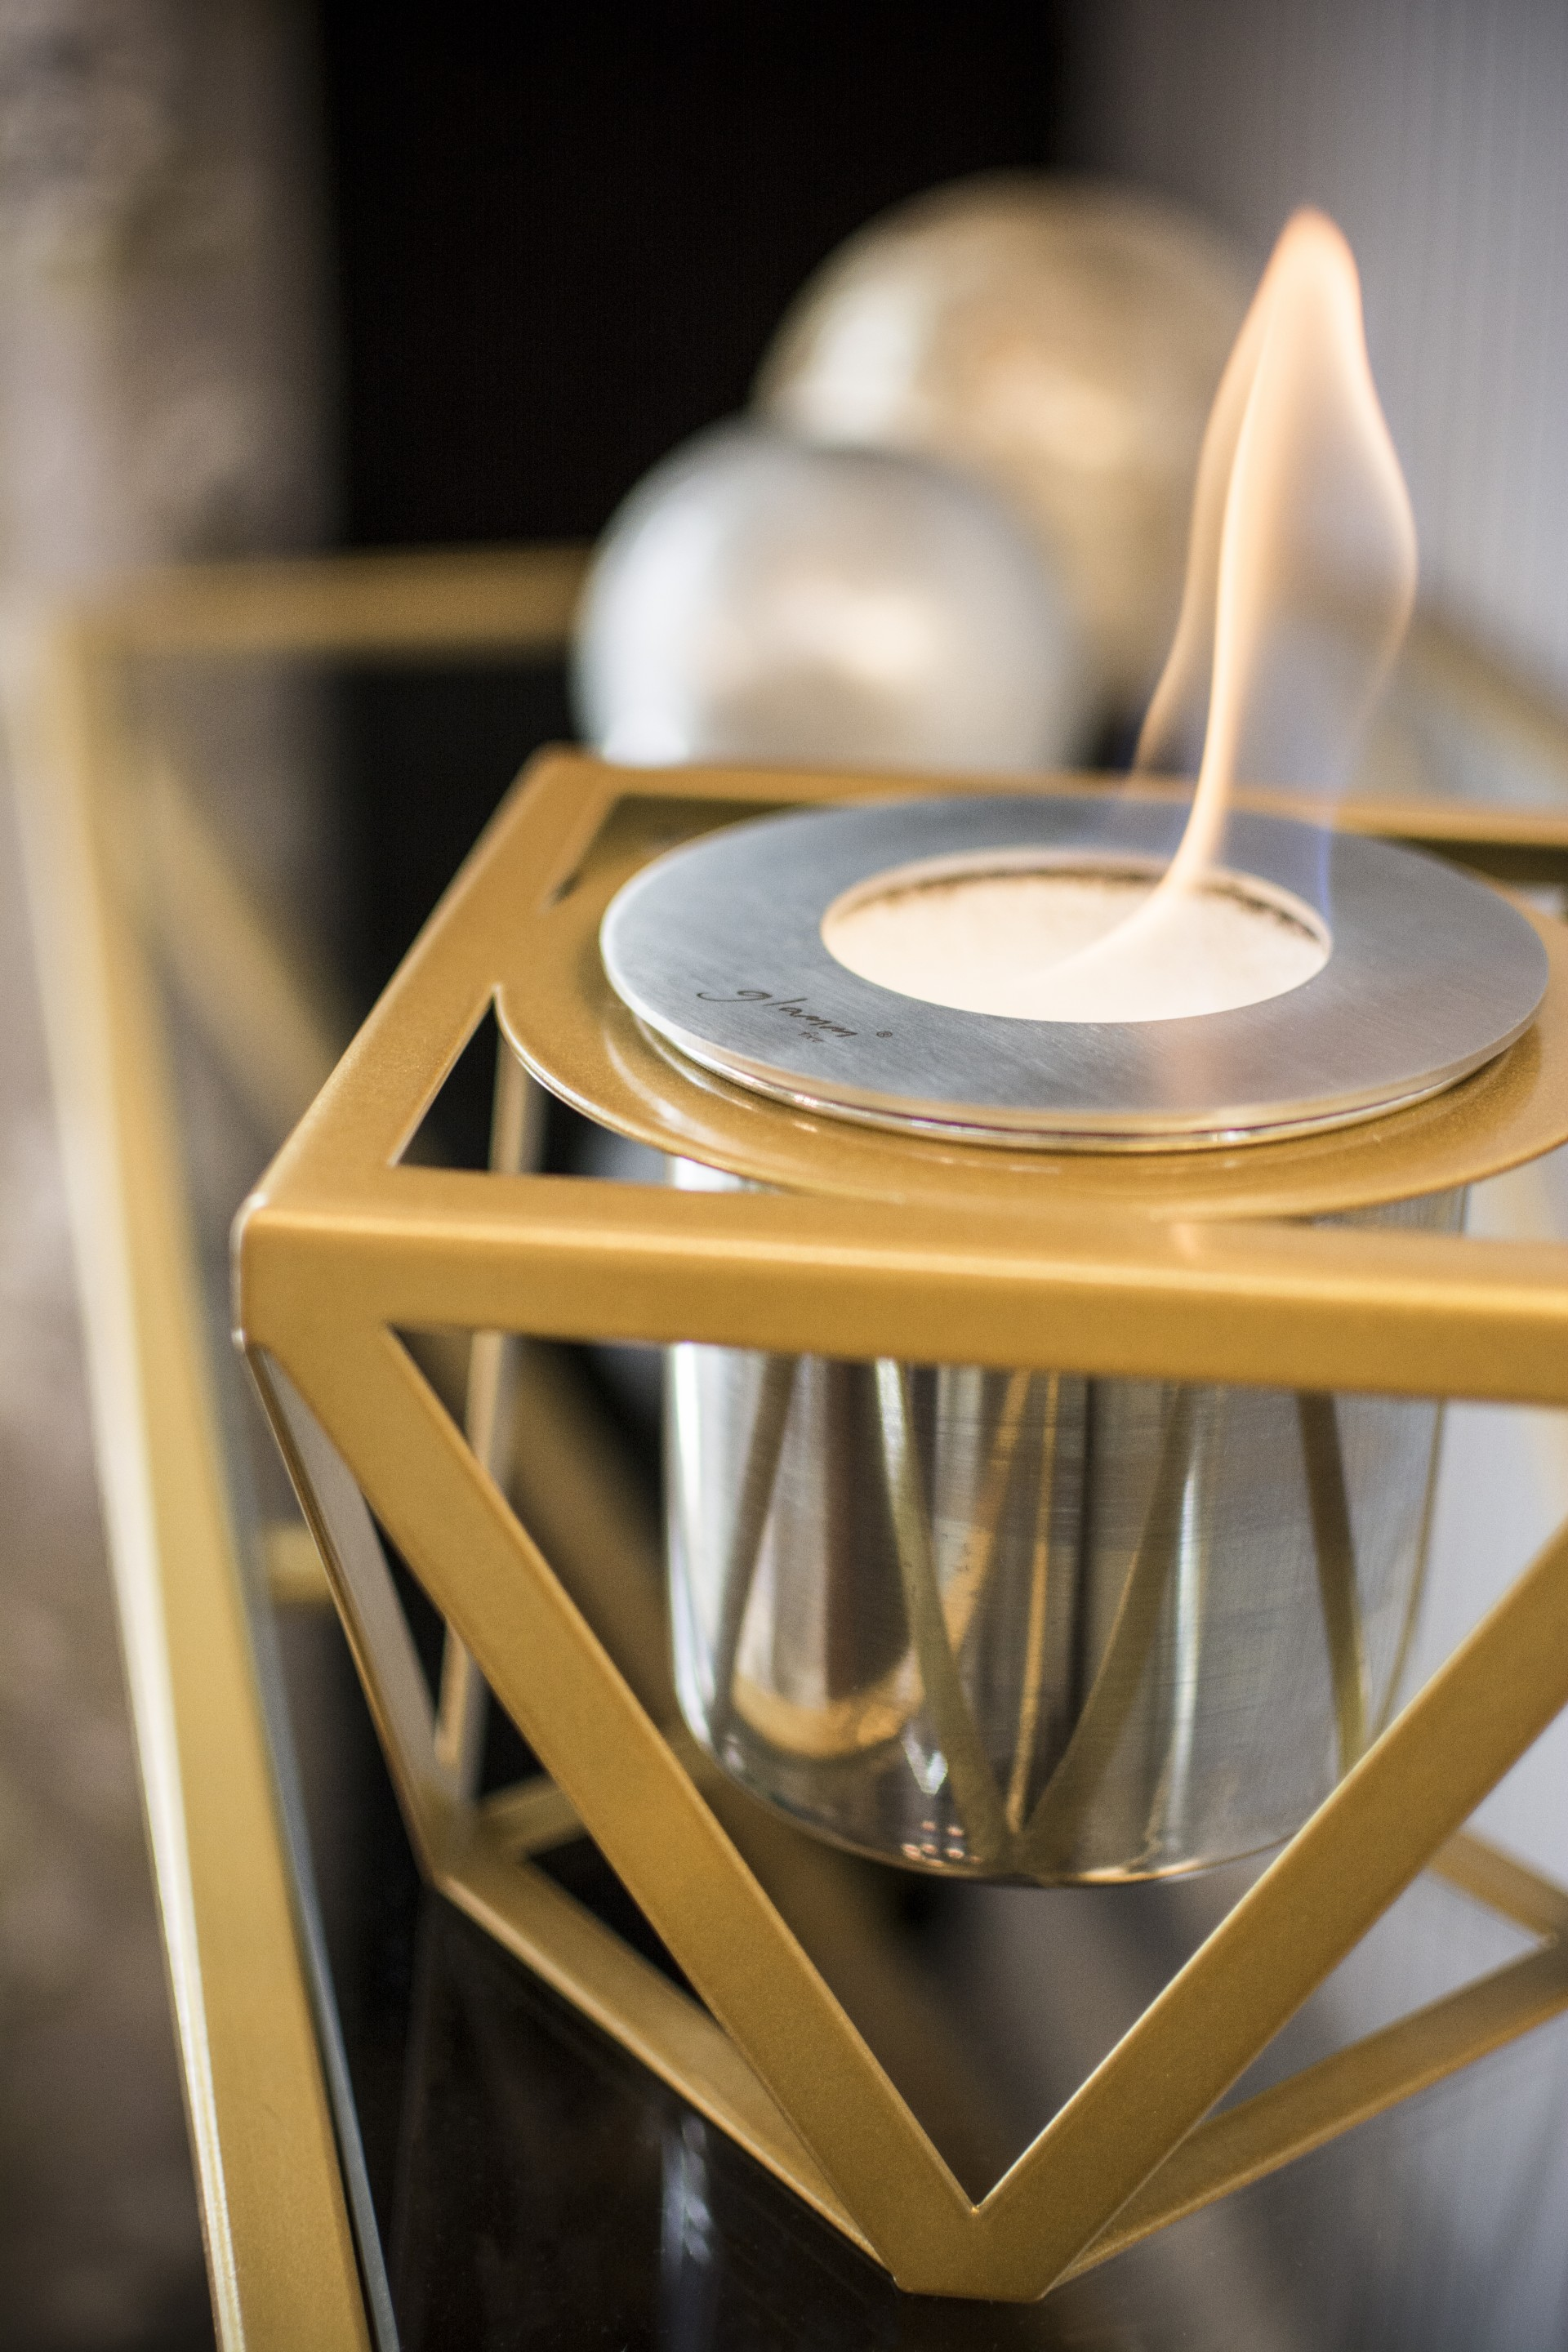 Tabletop Fireplaces | The new range of ethanol tabletop fireplaces